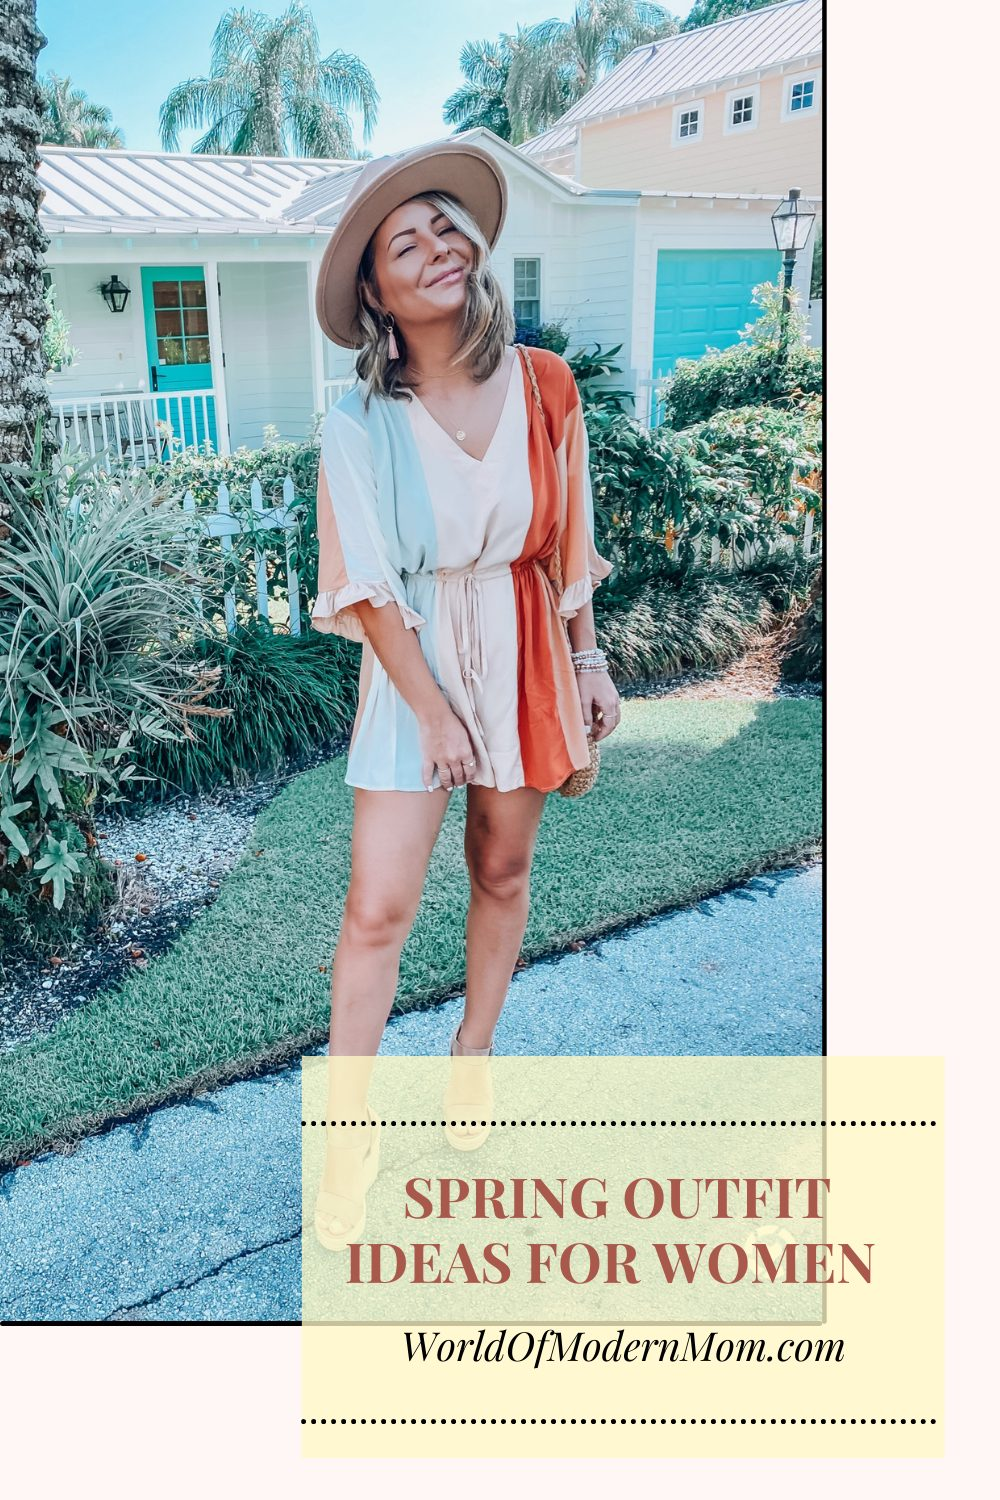 Spring Outfit Ideas!